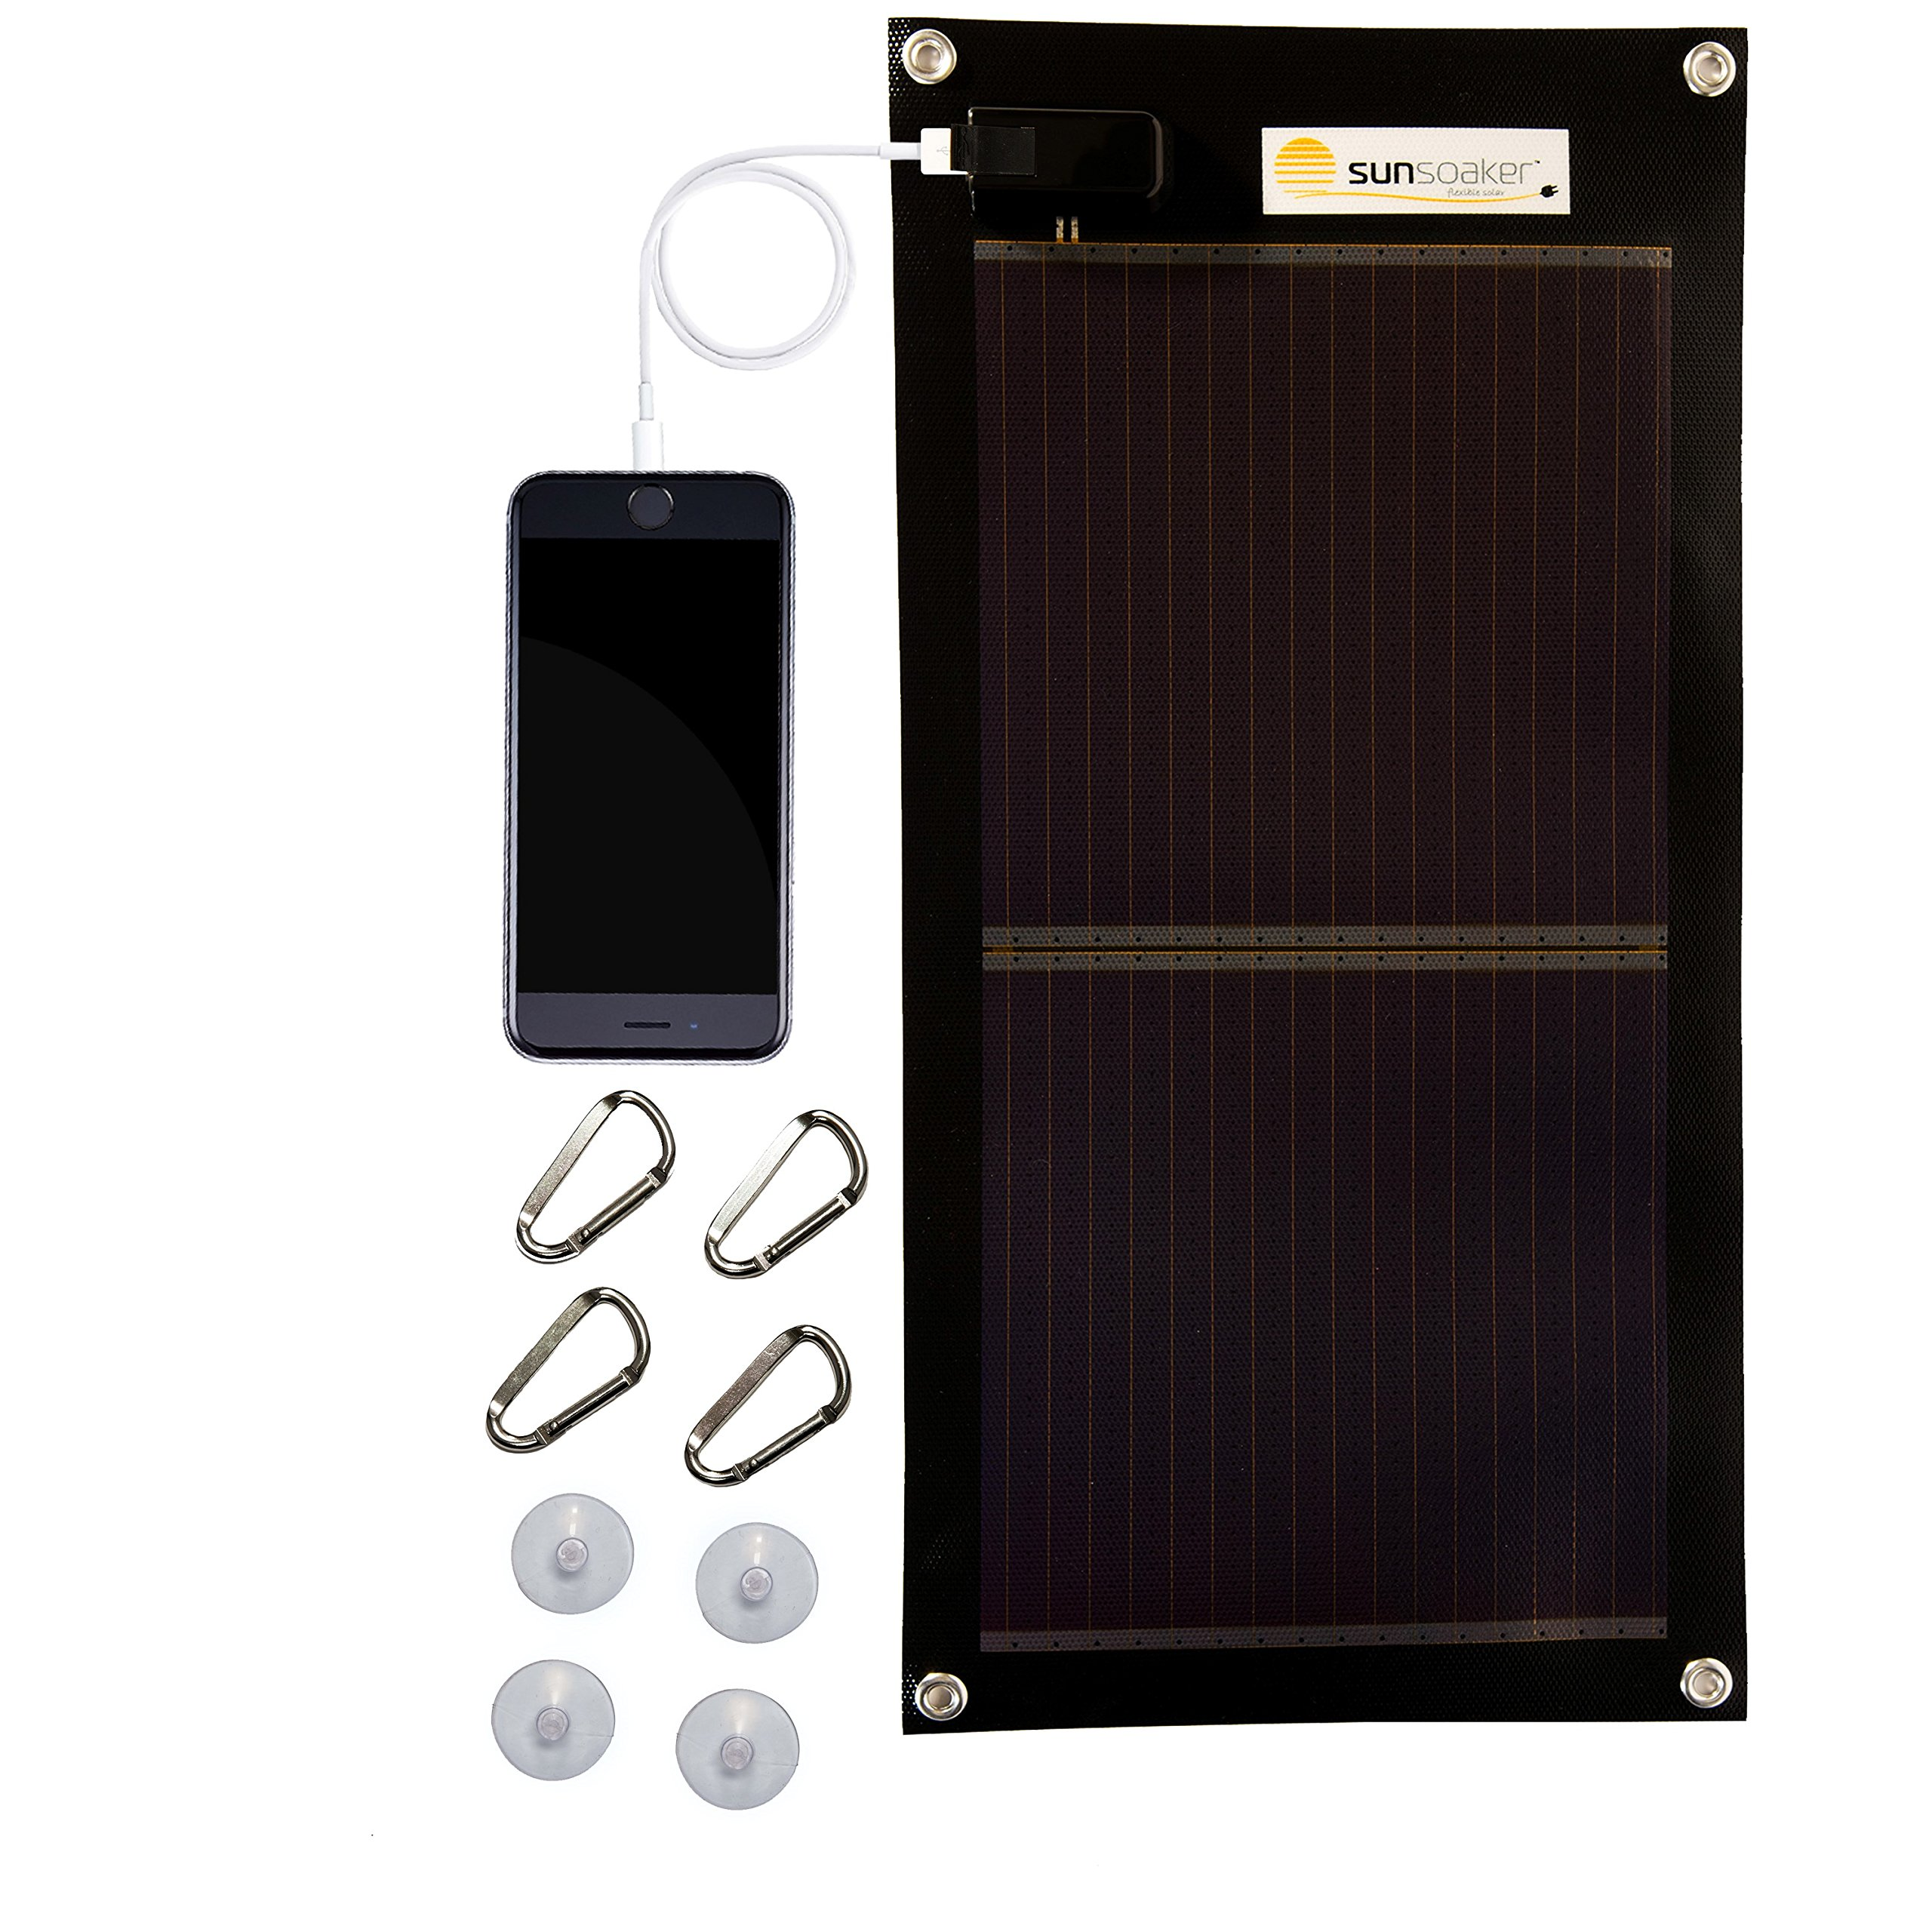 Sunsoaker Solar Charger: Flexible Solar Panel + Solar Phone Charger for iPhone Android Tablets & Other Electronic Devices - 5w